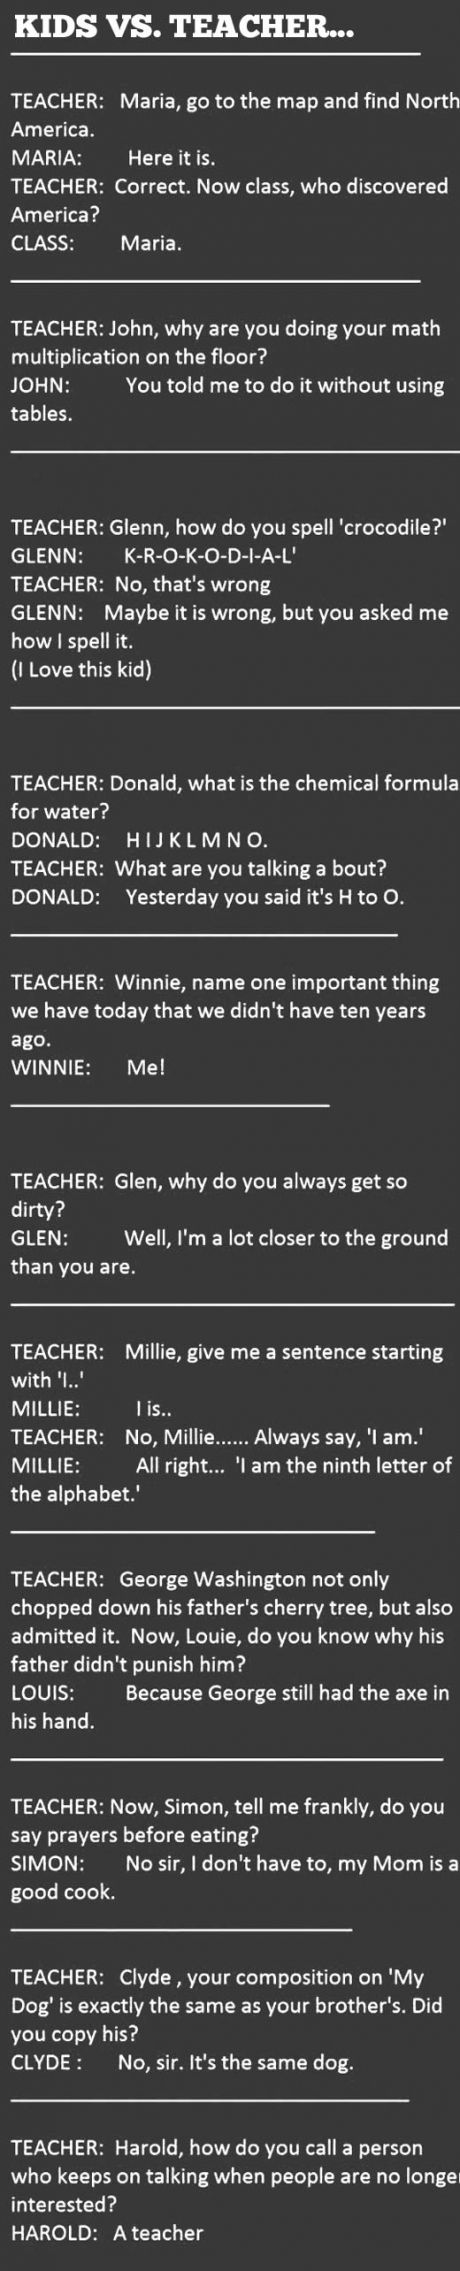 Kids Vs. Teachers. Some of these are so funny!